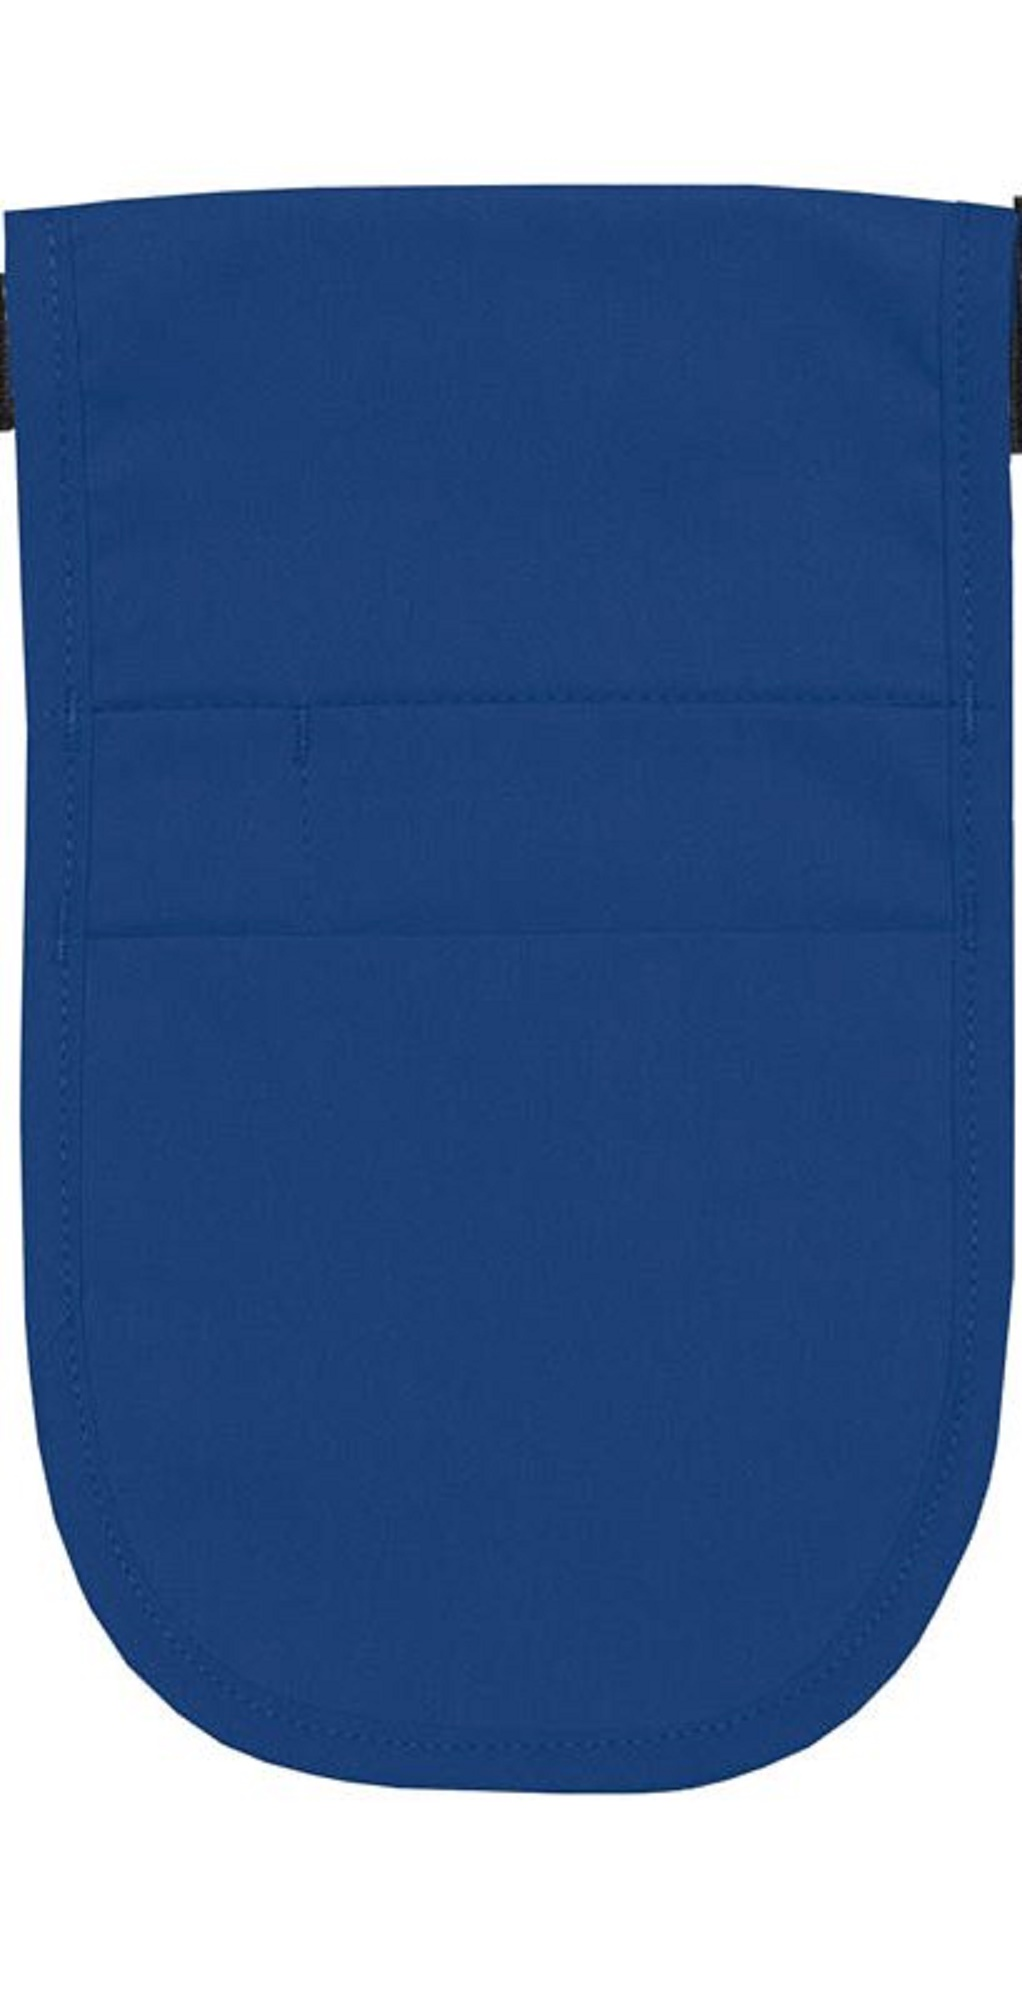 Style 152 Professional Money Pouch Aprons with Attached Belt - Royal Blue